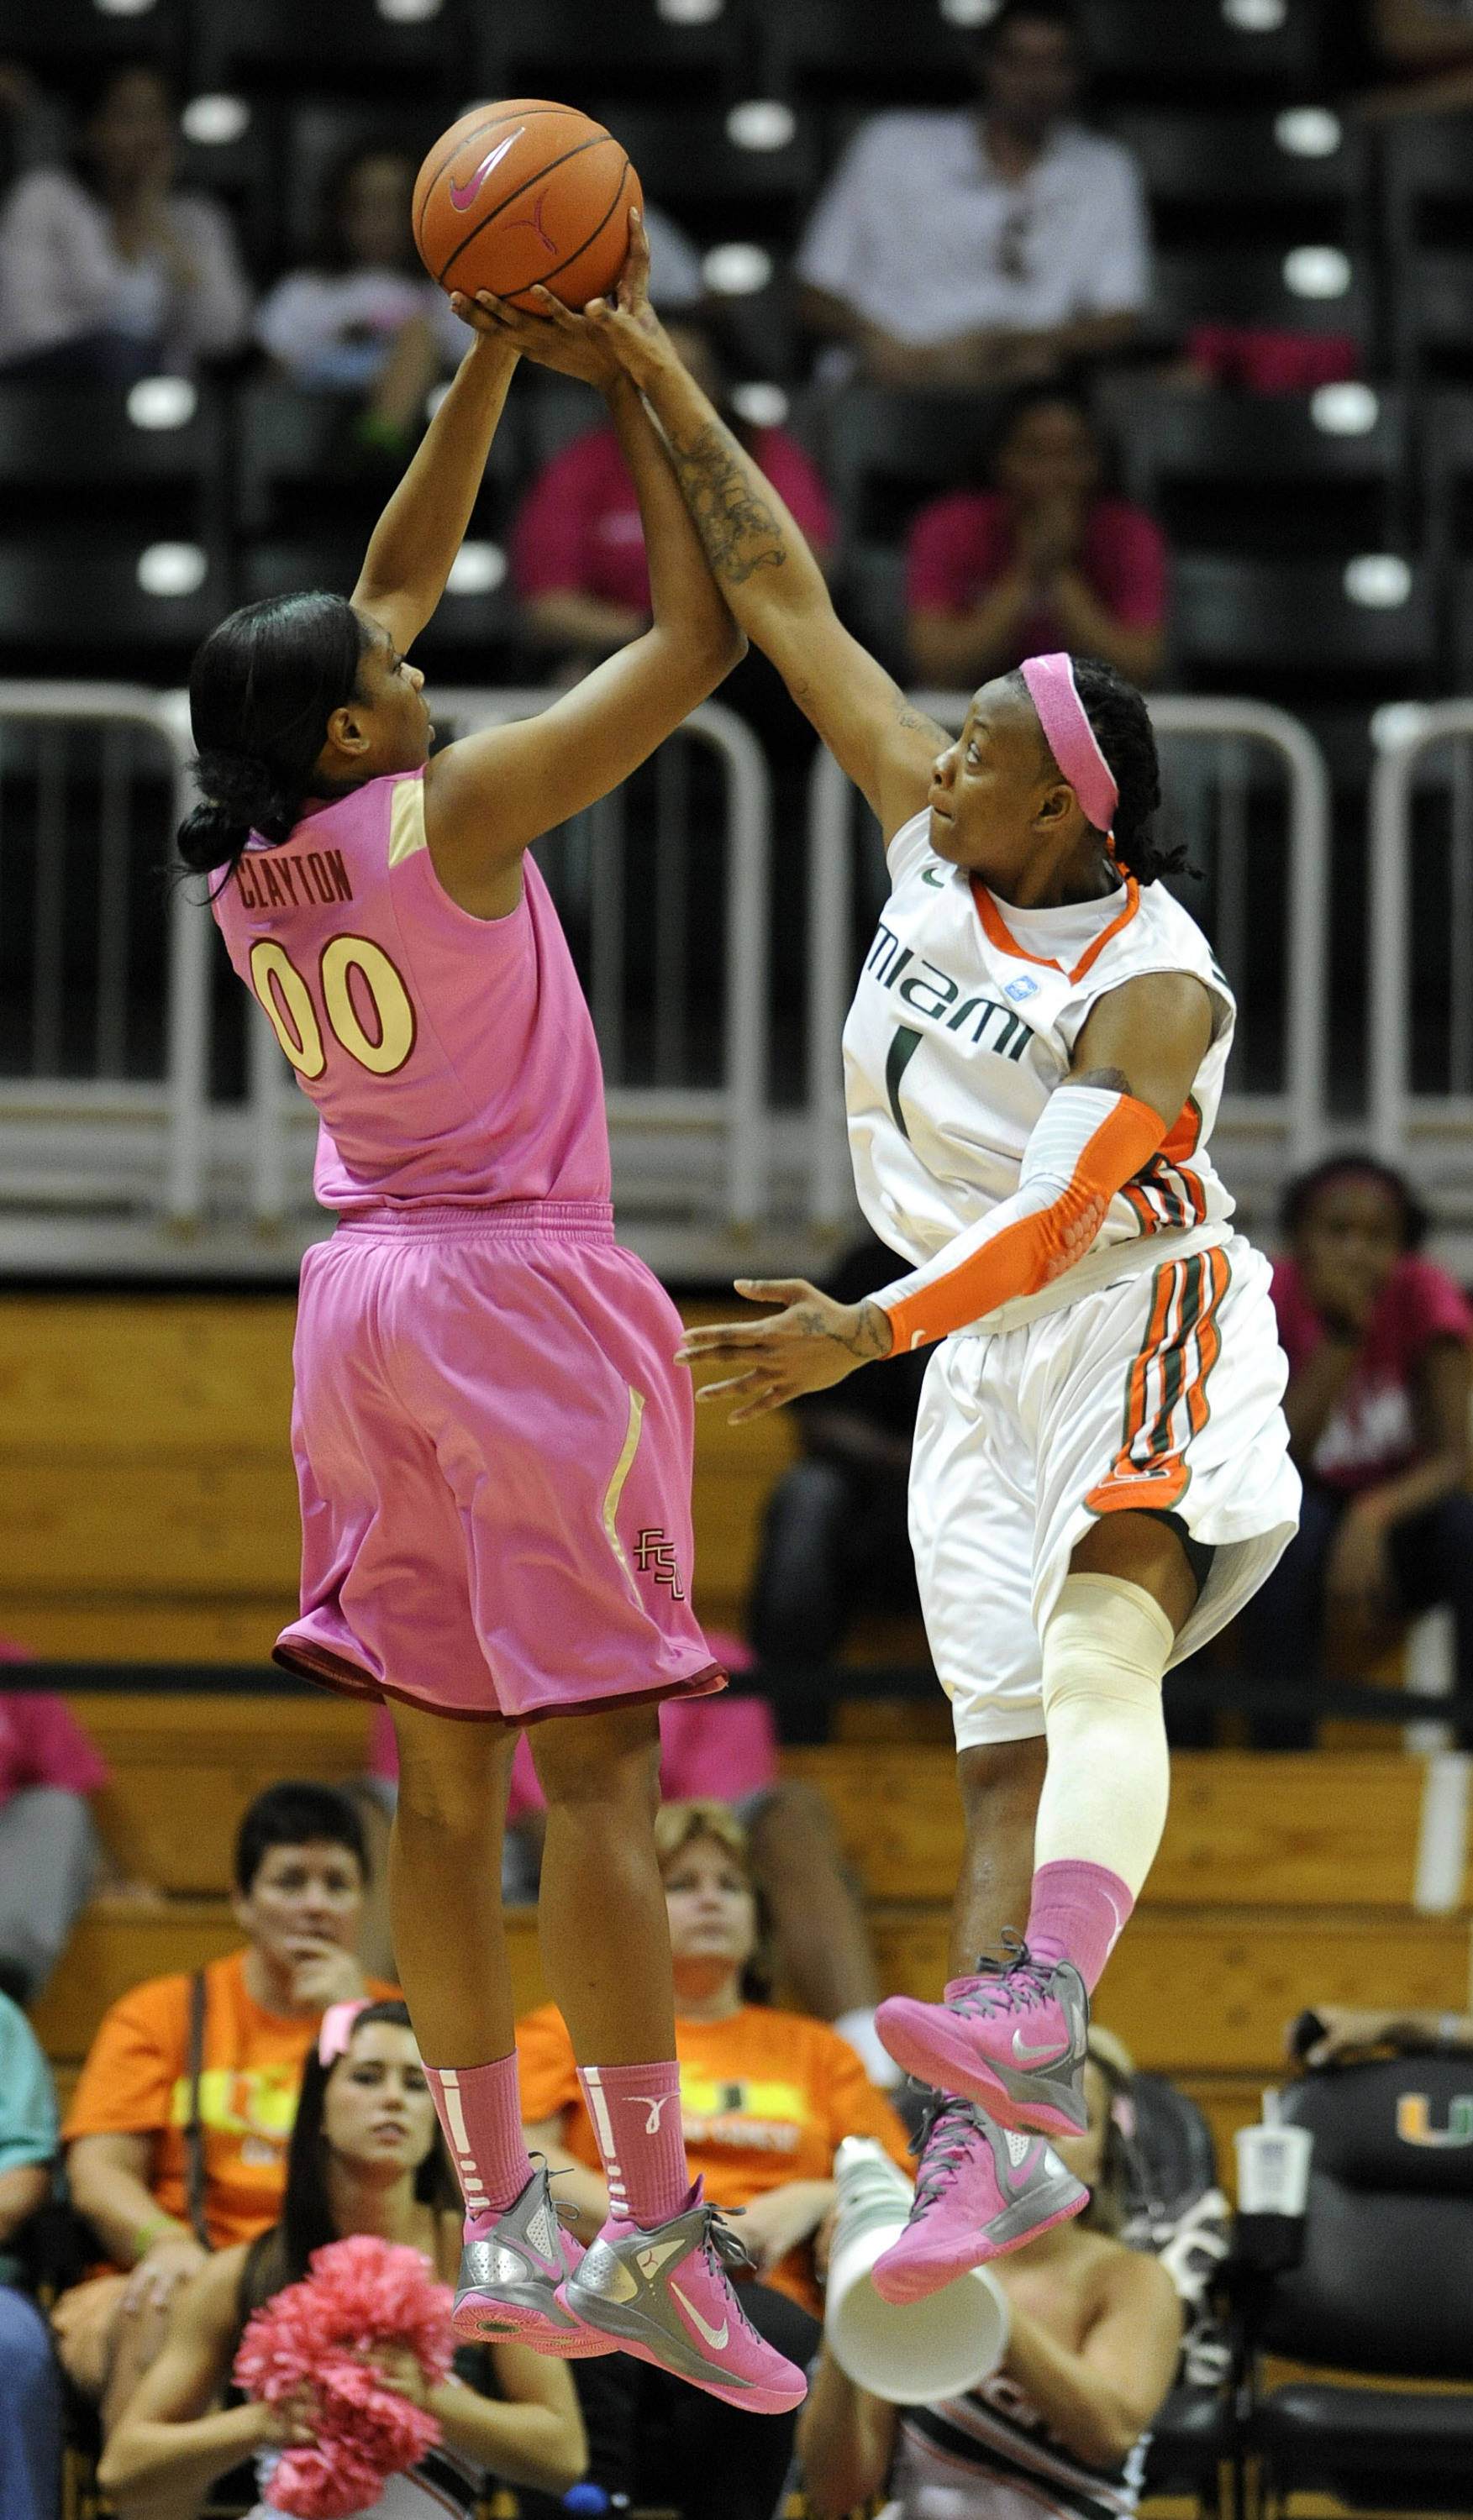 Miami's Riquna Williams, right, defends Florida State's Chasity Clayton, left, during the first half of an NCAA college basketball game on Sunday, Feb. 19, 2012 in Coral Gables, Fla. (AP Photo/Rhona Wise)